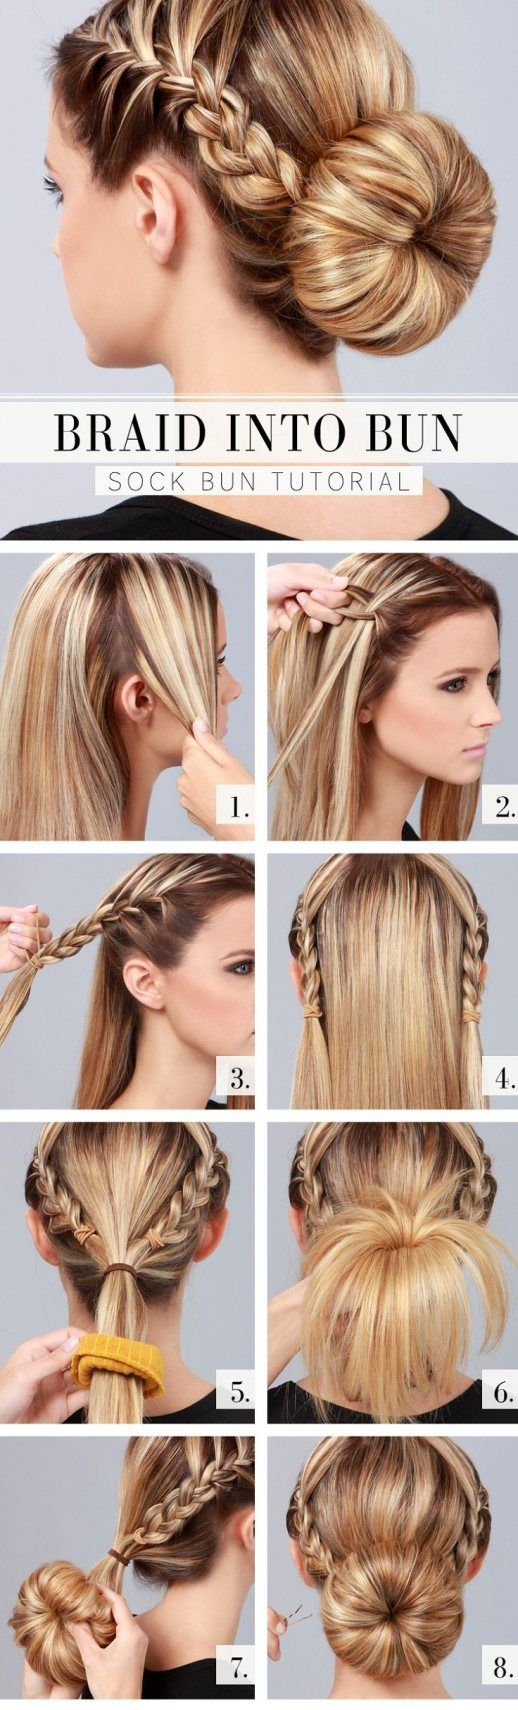 Braid-into-Bun-Tutorial